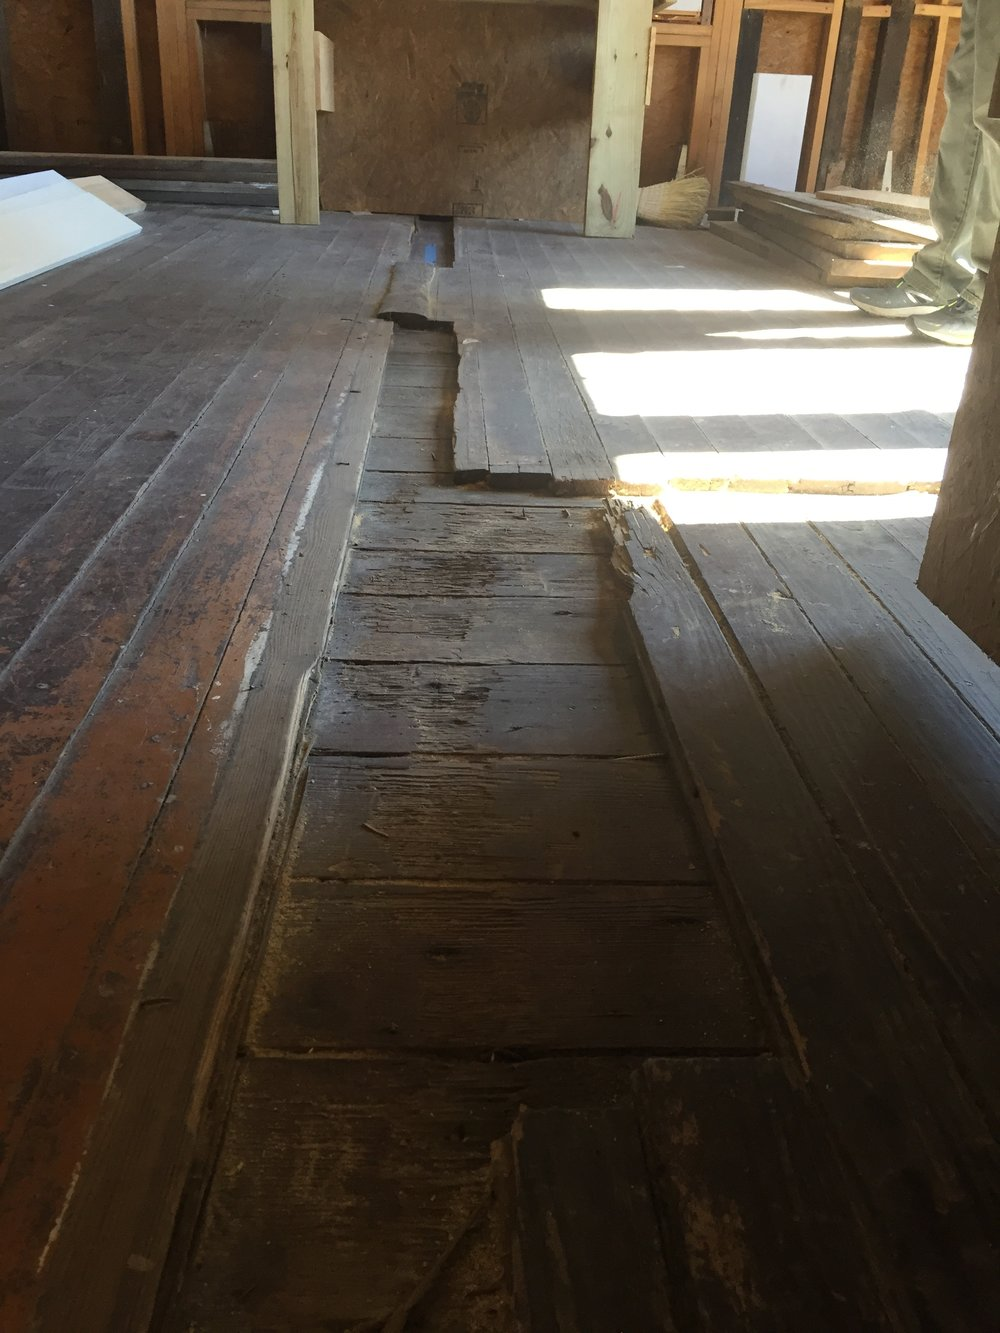 Ghost marks left in the wood floor by a wall and doorway that used to divide the room.